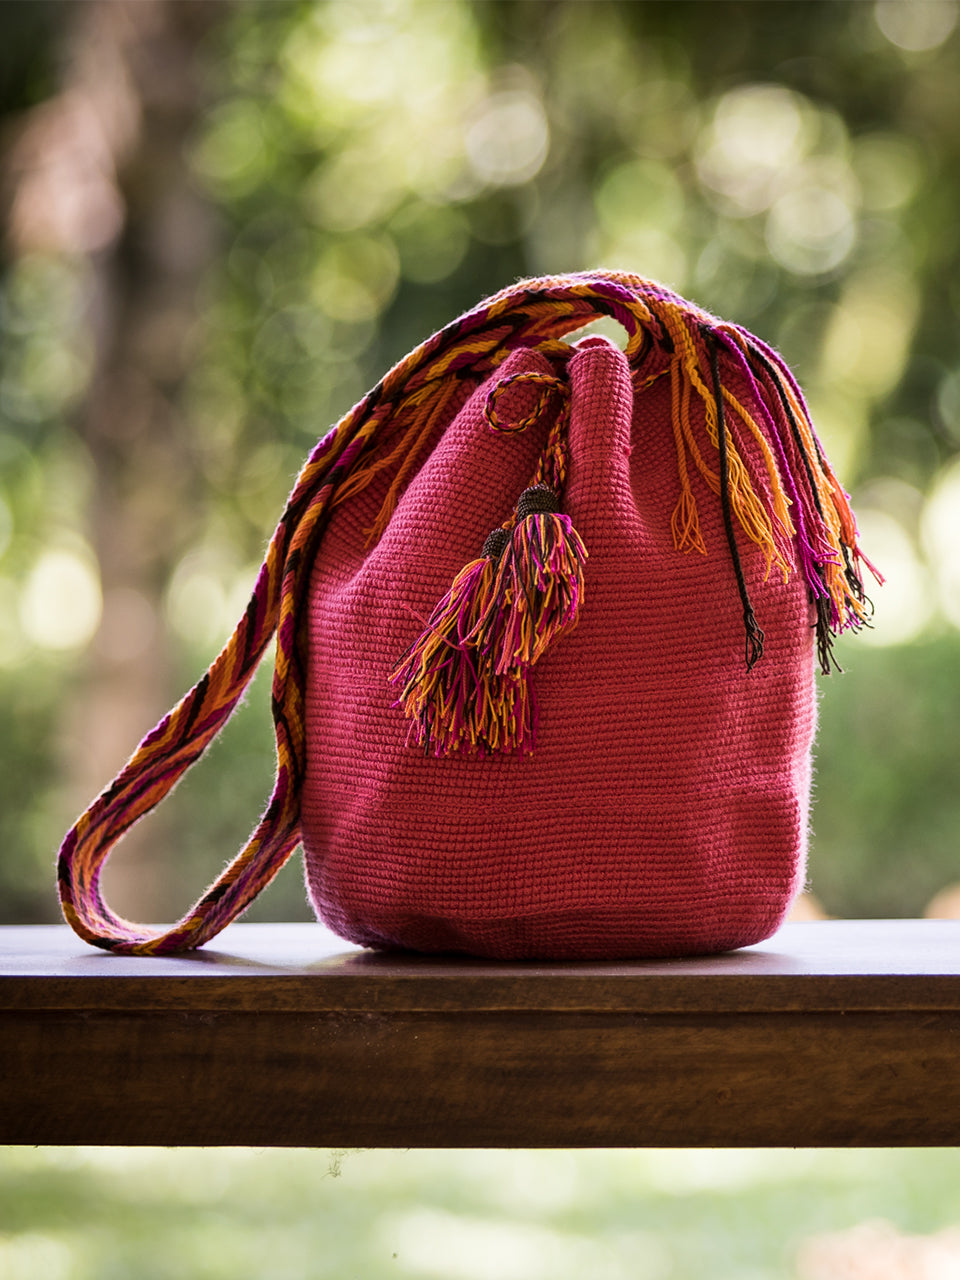 Pink woven shoulder bag with tassels and beads Palmazul Beachwear Lifestyle Wayuu Mochila